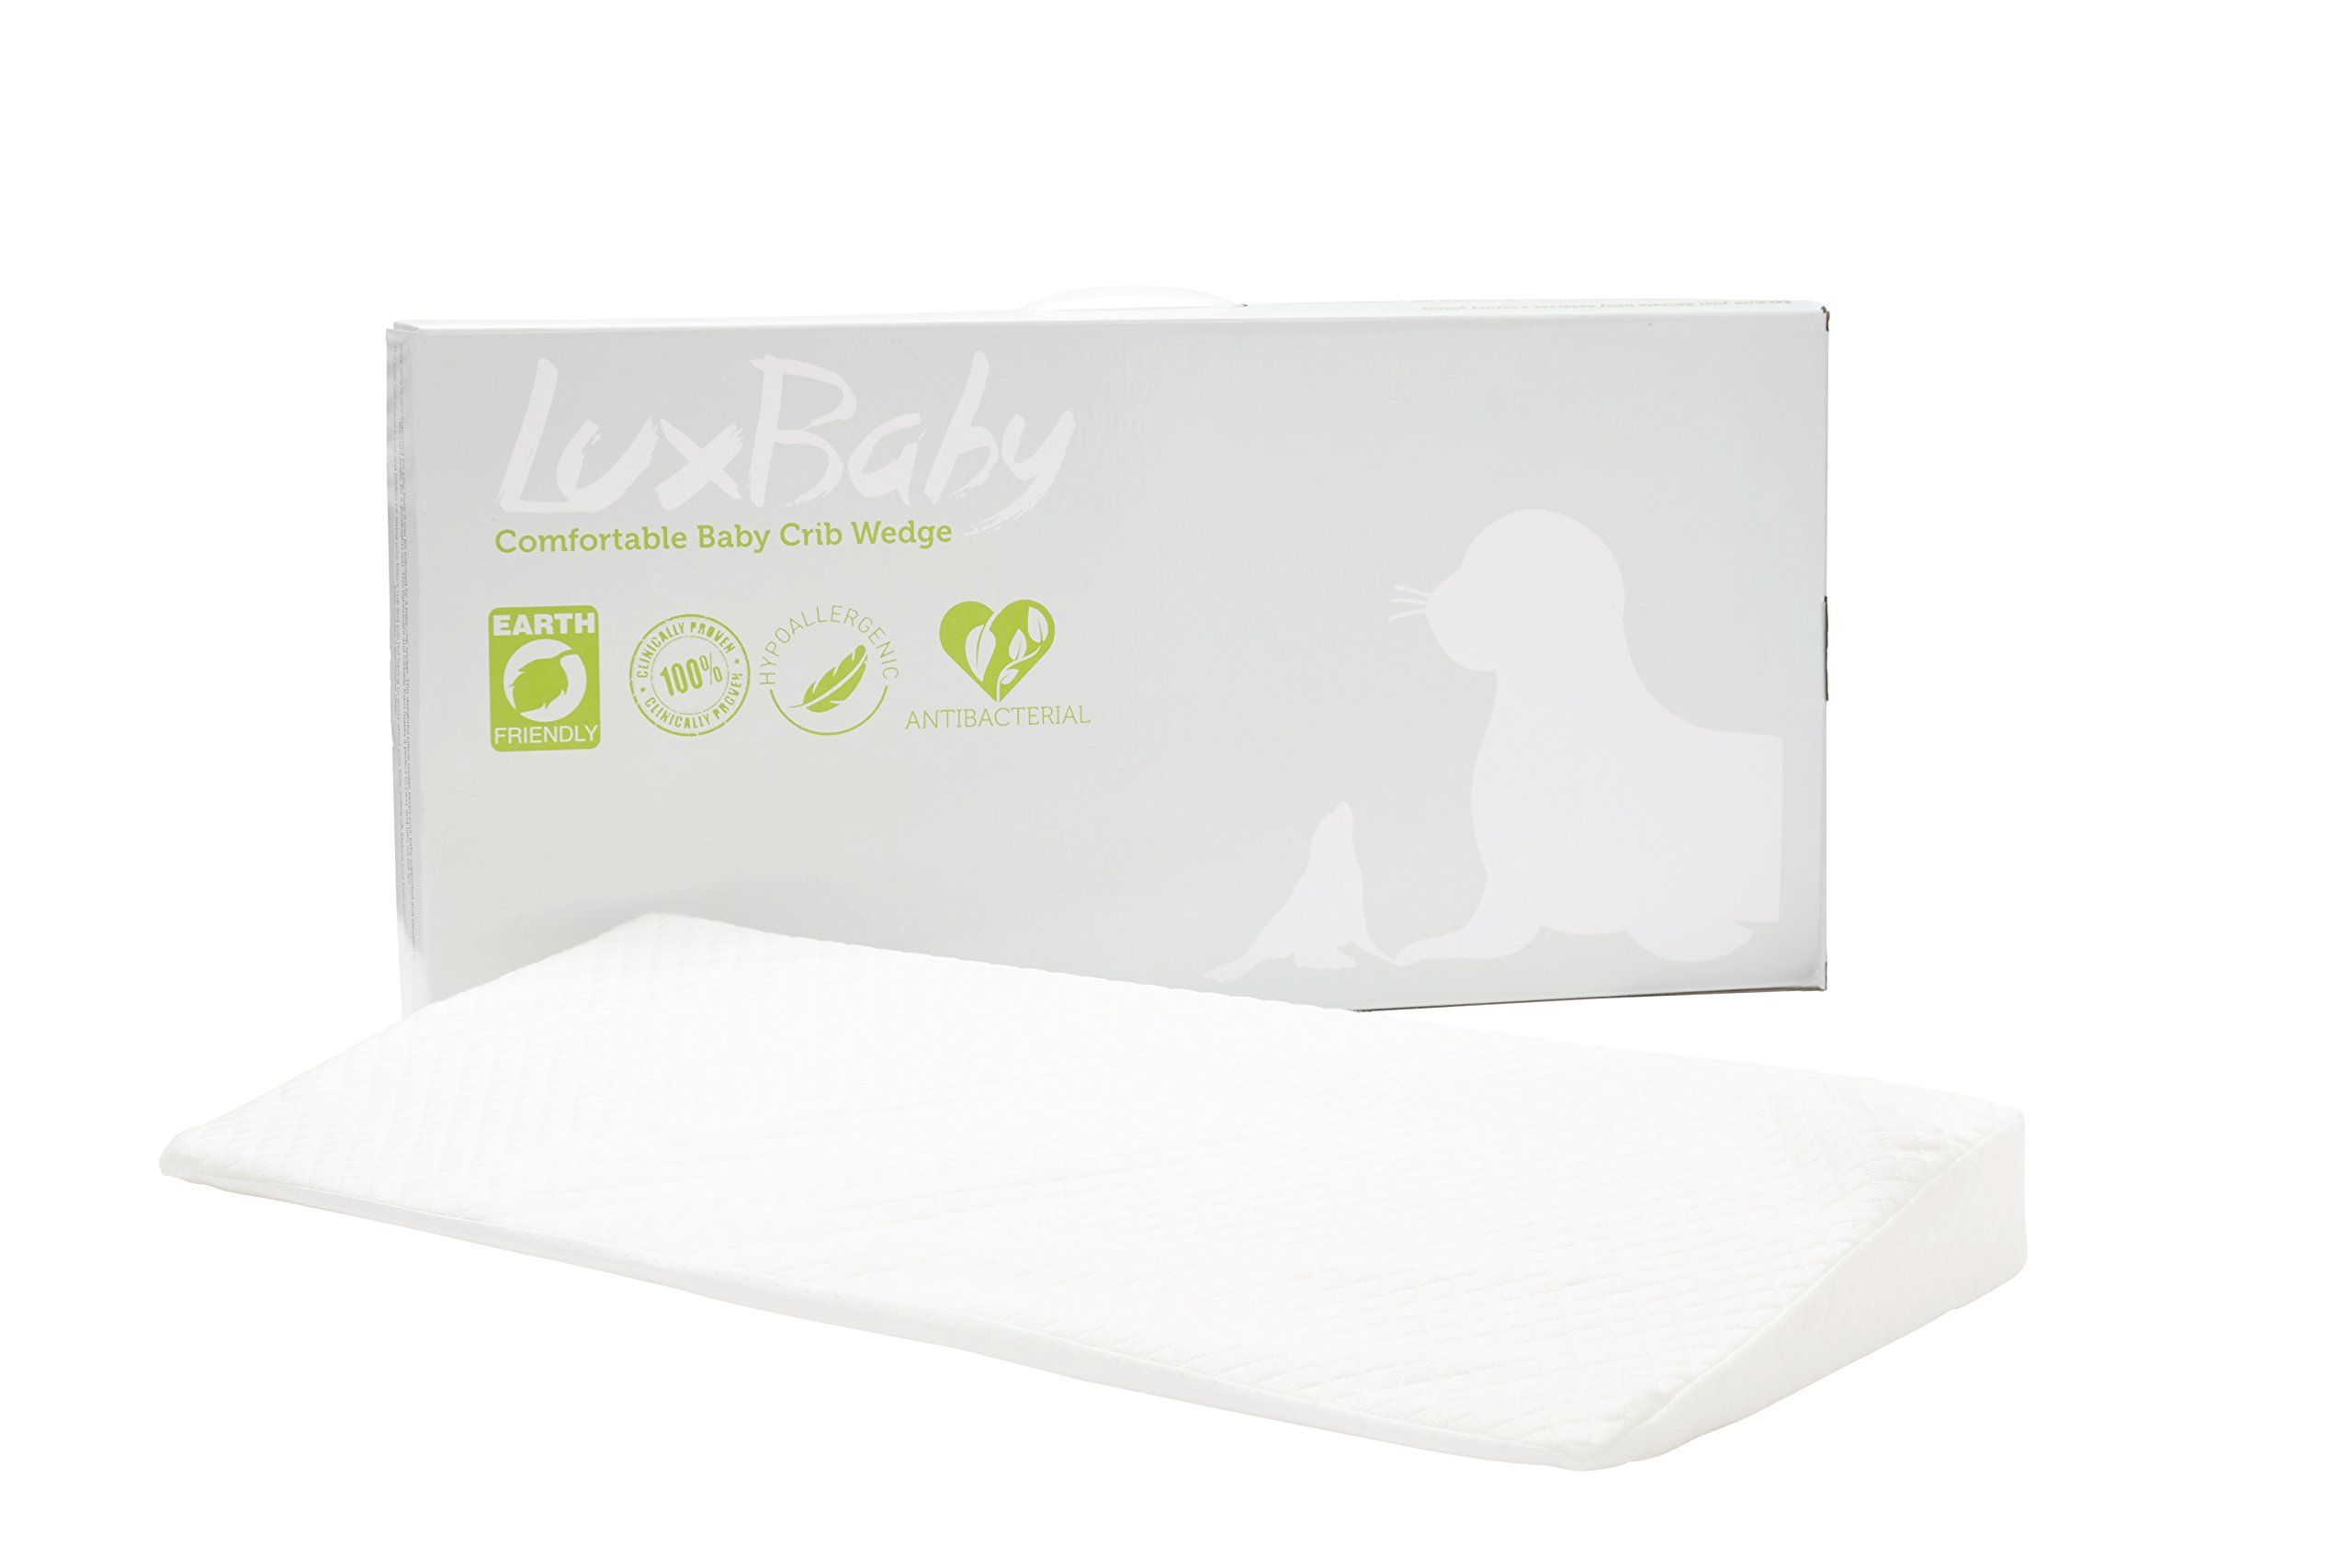 """LuxBaby Acid Reflux Crib Wedge l Antibacterial & Hypoallergenic l Soft Waterproof Cotton with Non-slip bottom l 27.25""""x13.25""""x2.75"""" size, for infant & toddlers"""